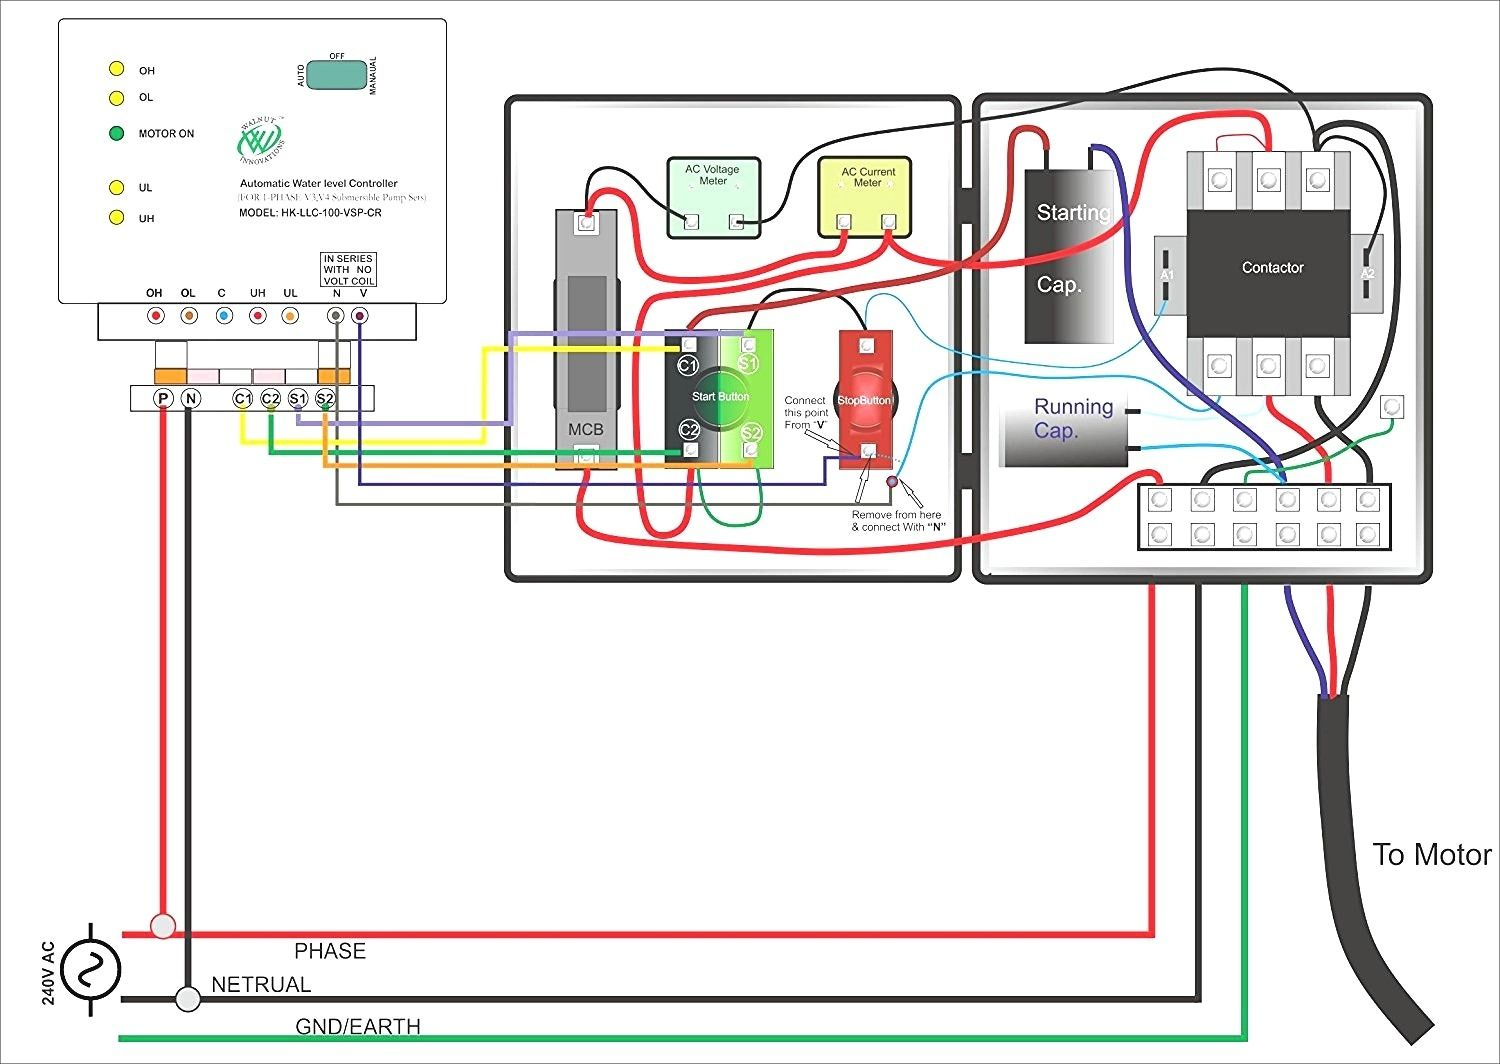 hight resolution of single phase submersible pump starter wiring diagram gooddy org best box diagram besides 3 phase electrical diagram symbols further 2009